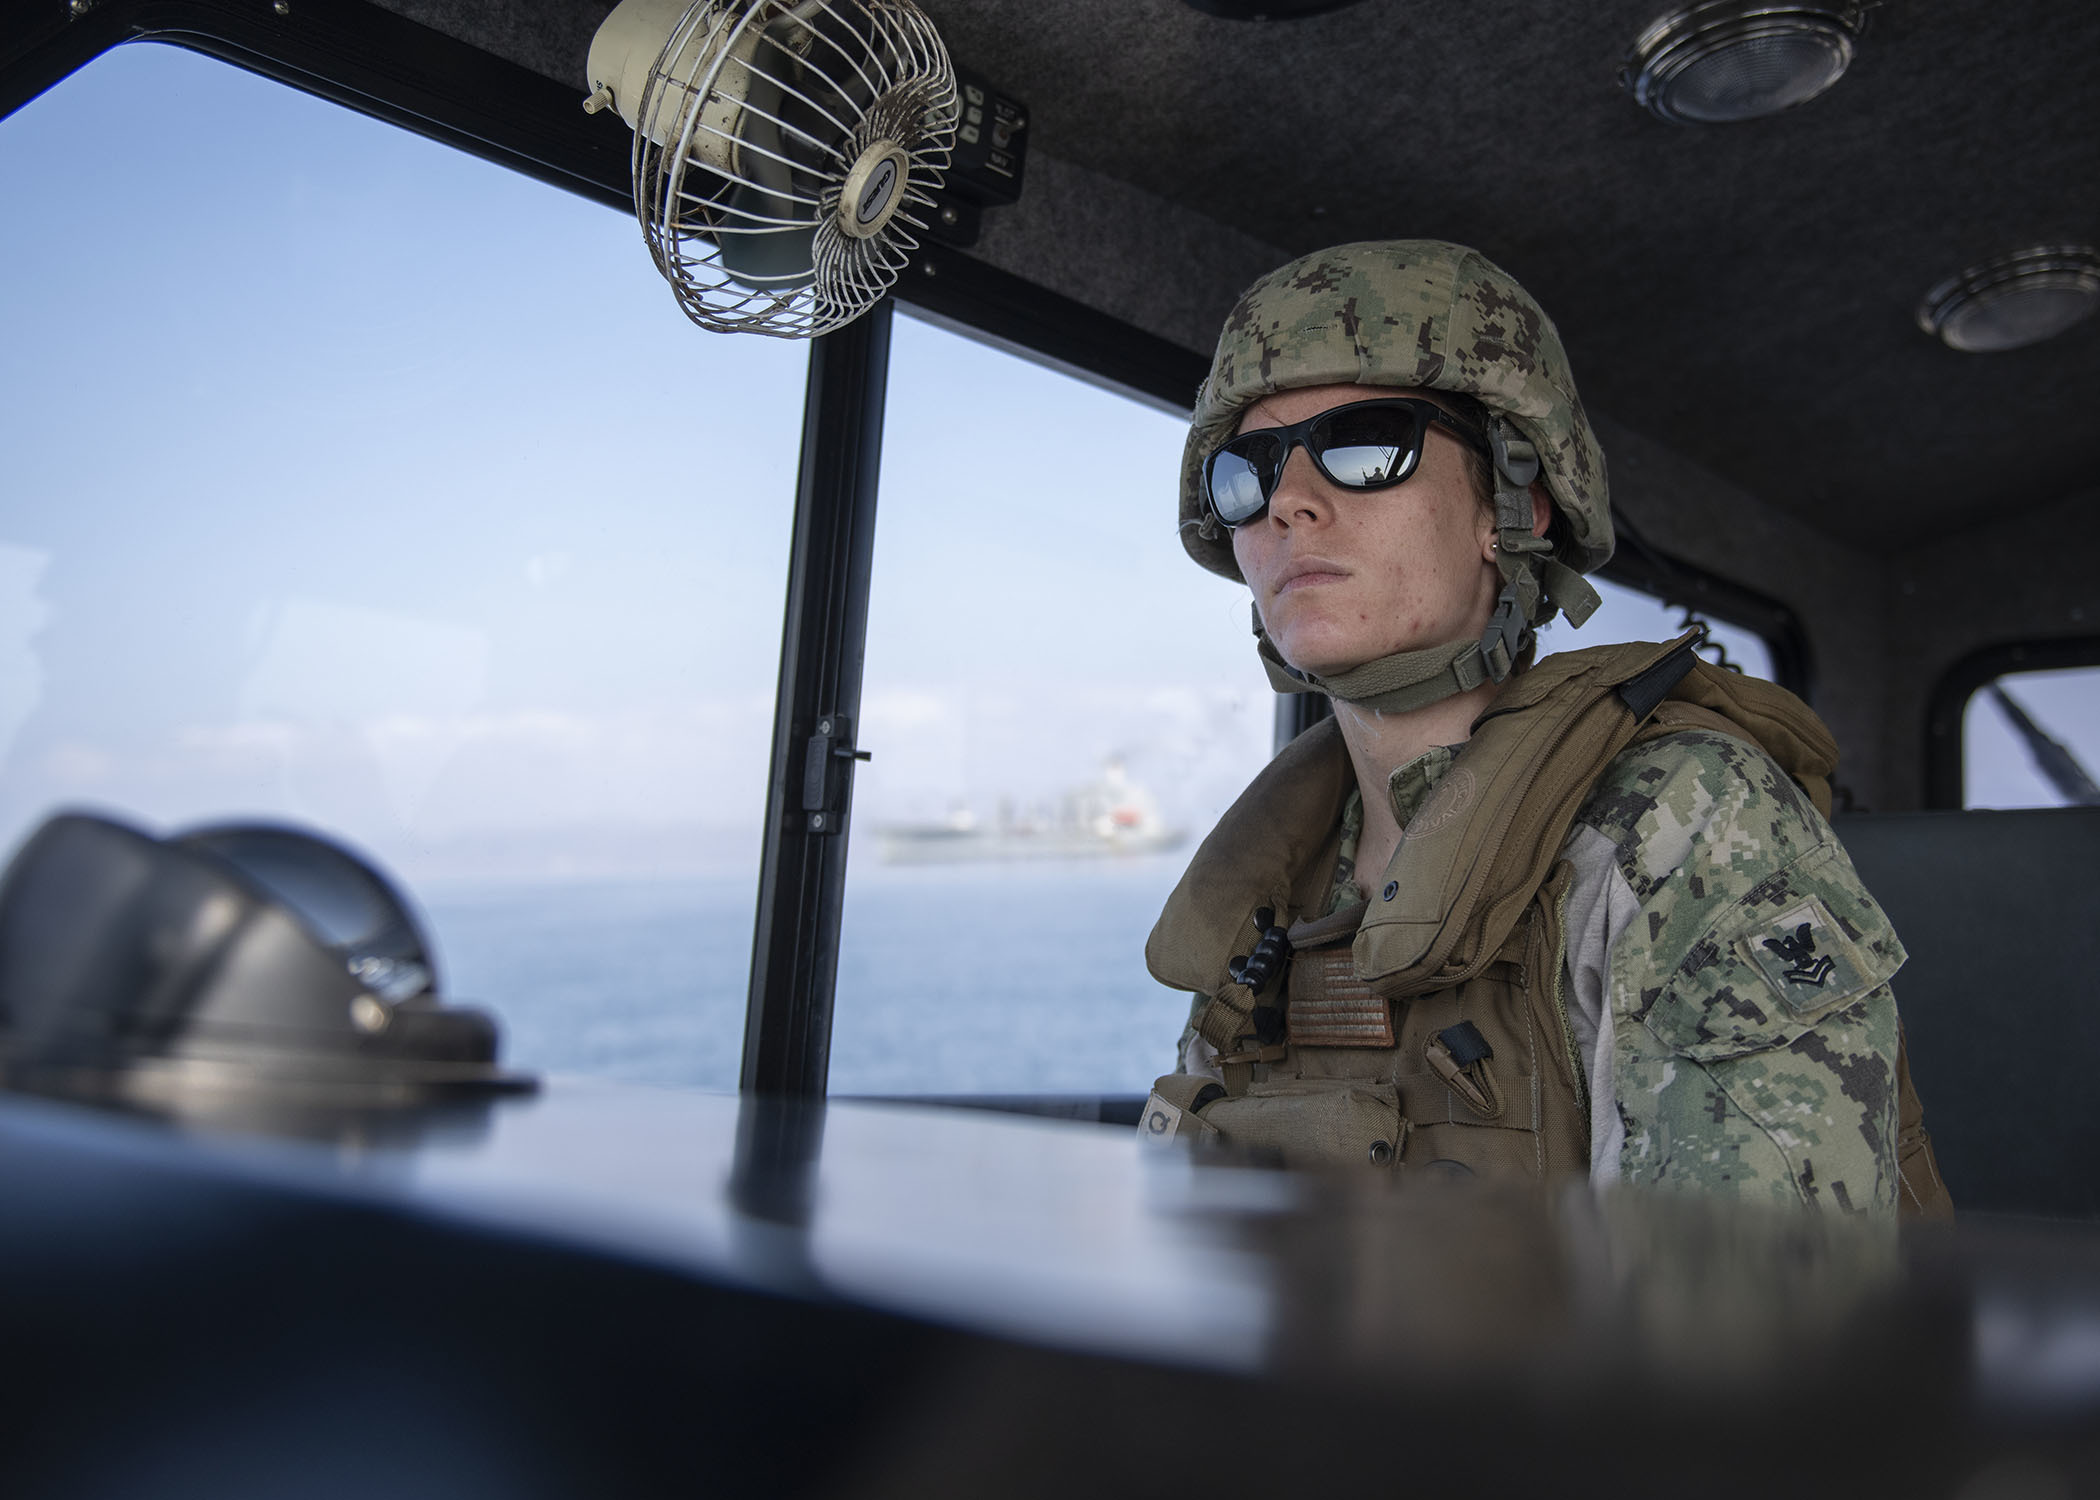 U.S. Navy Petty Officer 2nd Class Morgan Cushing, coxswain in training, Coastal Riverine Squadron 8, Combined Joint Task Force-Horn of Africa, Camp Lemonnier, Djibouti, pilots a Rigid Hull Inflatable Boat (RHIB) while providing an armed security escort in the Gulf of Tadjourah, Dec. 7, 2018. Coastal Riverine Squadron 8 conducts force protection of strategic shipping and naval vessels operating in the inshore and coastal areas, anchorages and harbors, from bare beach to sophisticated port facilities. (U.S. Air Force photo by Tech. Sgt. Shawn Nickel)